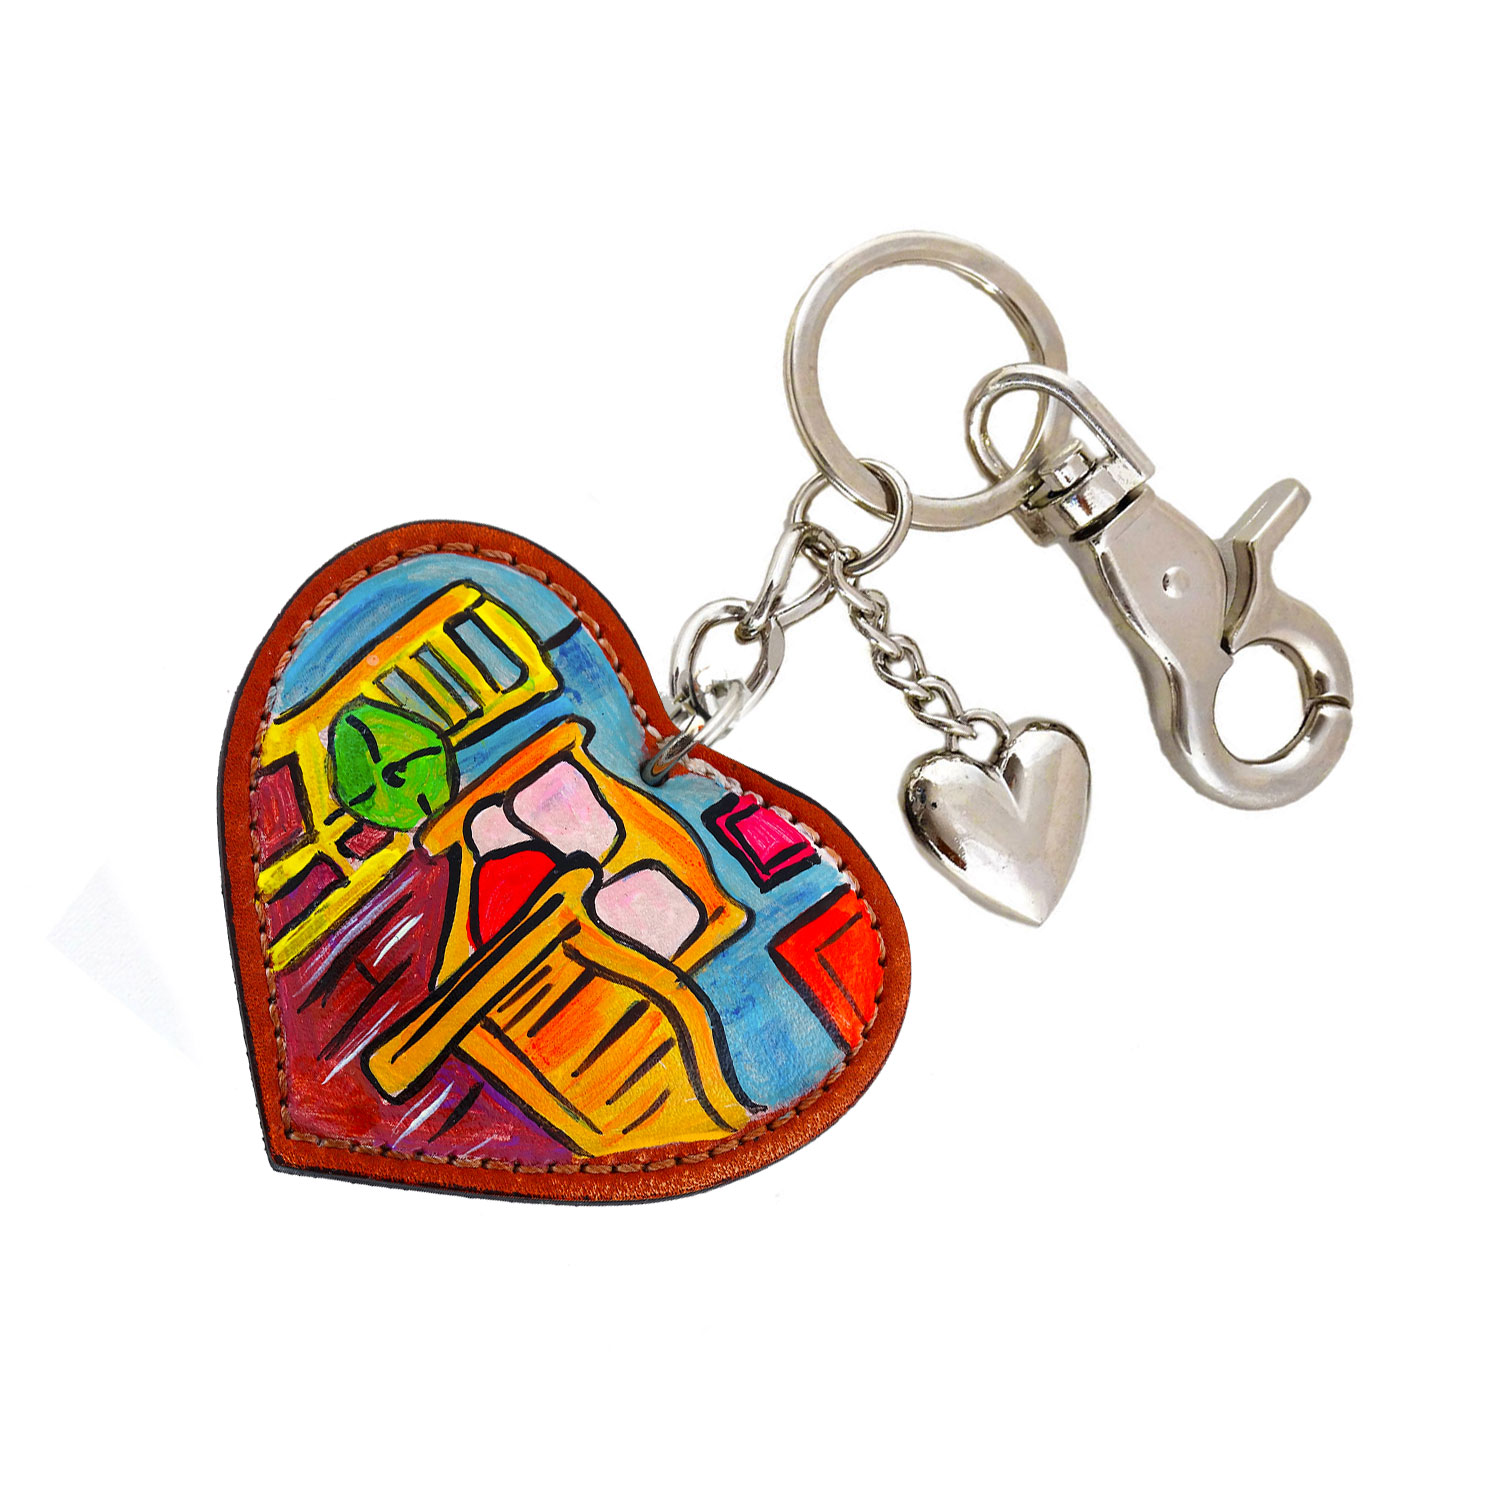 Hand painted keychain – The room by Van Gogh